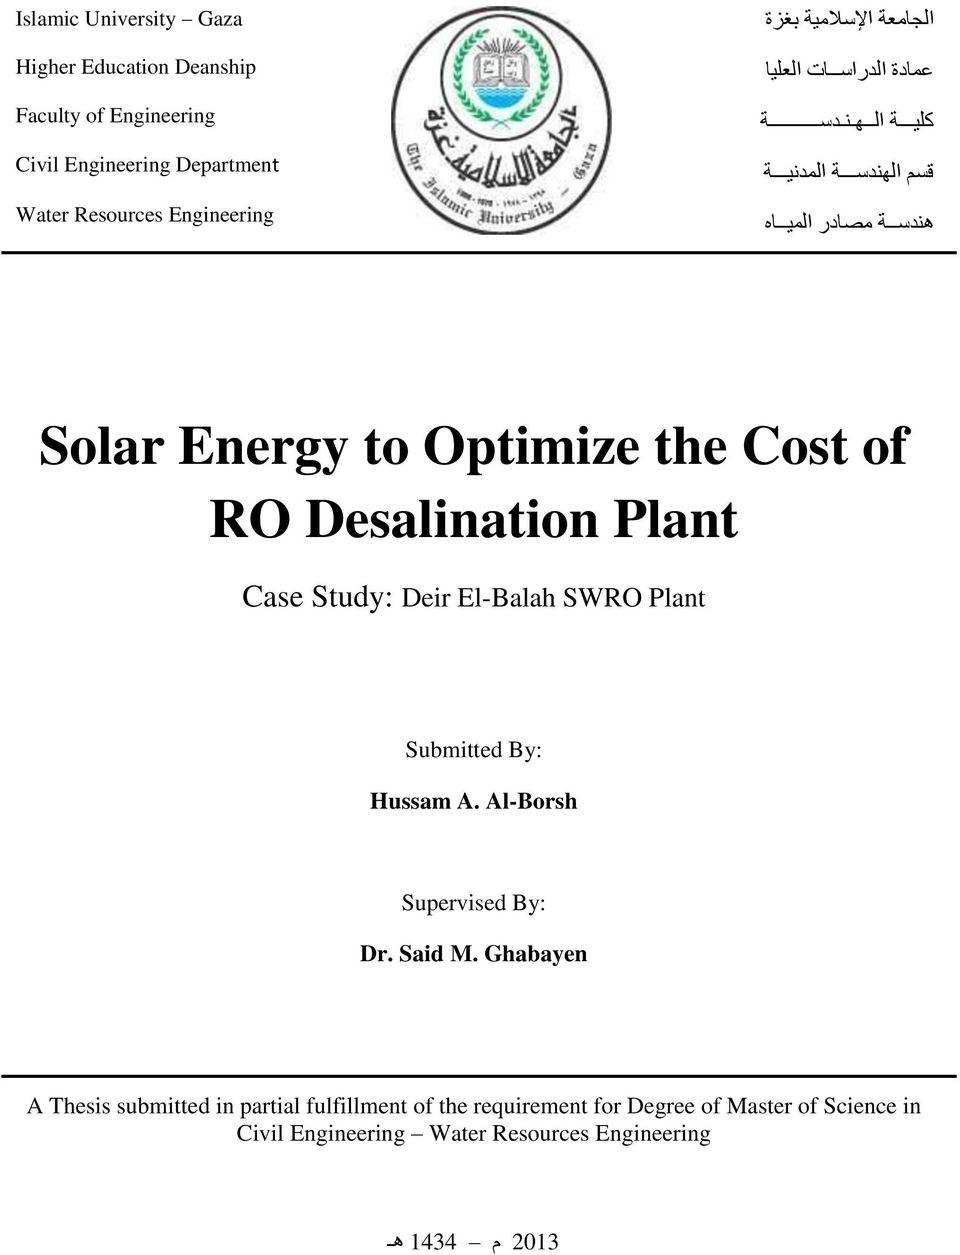 thesis proposal on solar energy Solar energy thesis proposal visit the post for more.